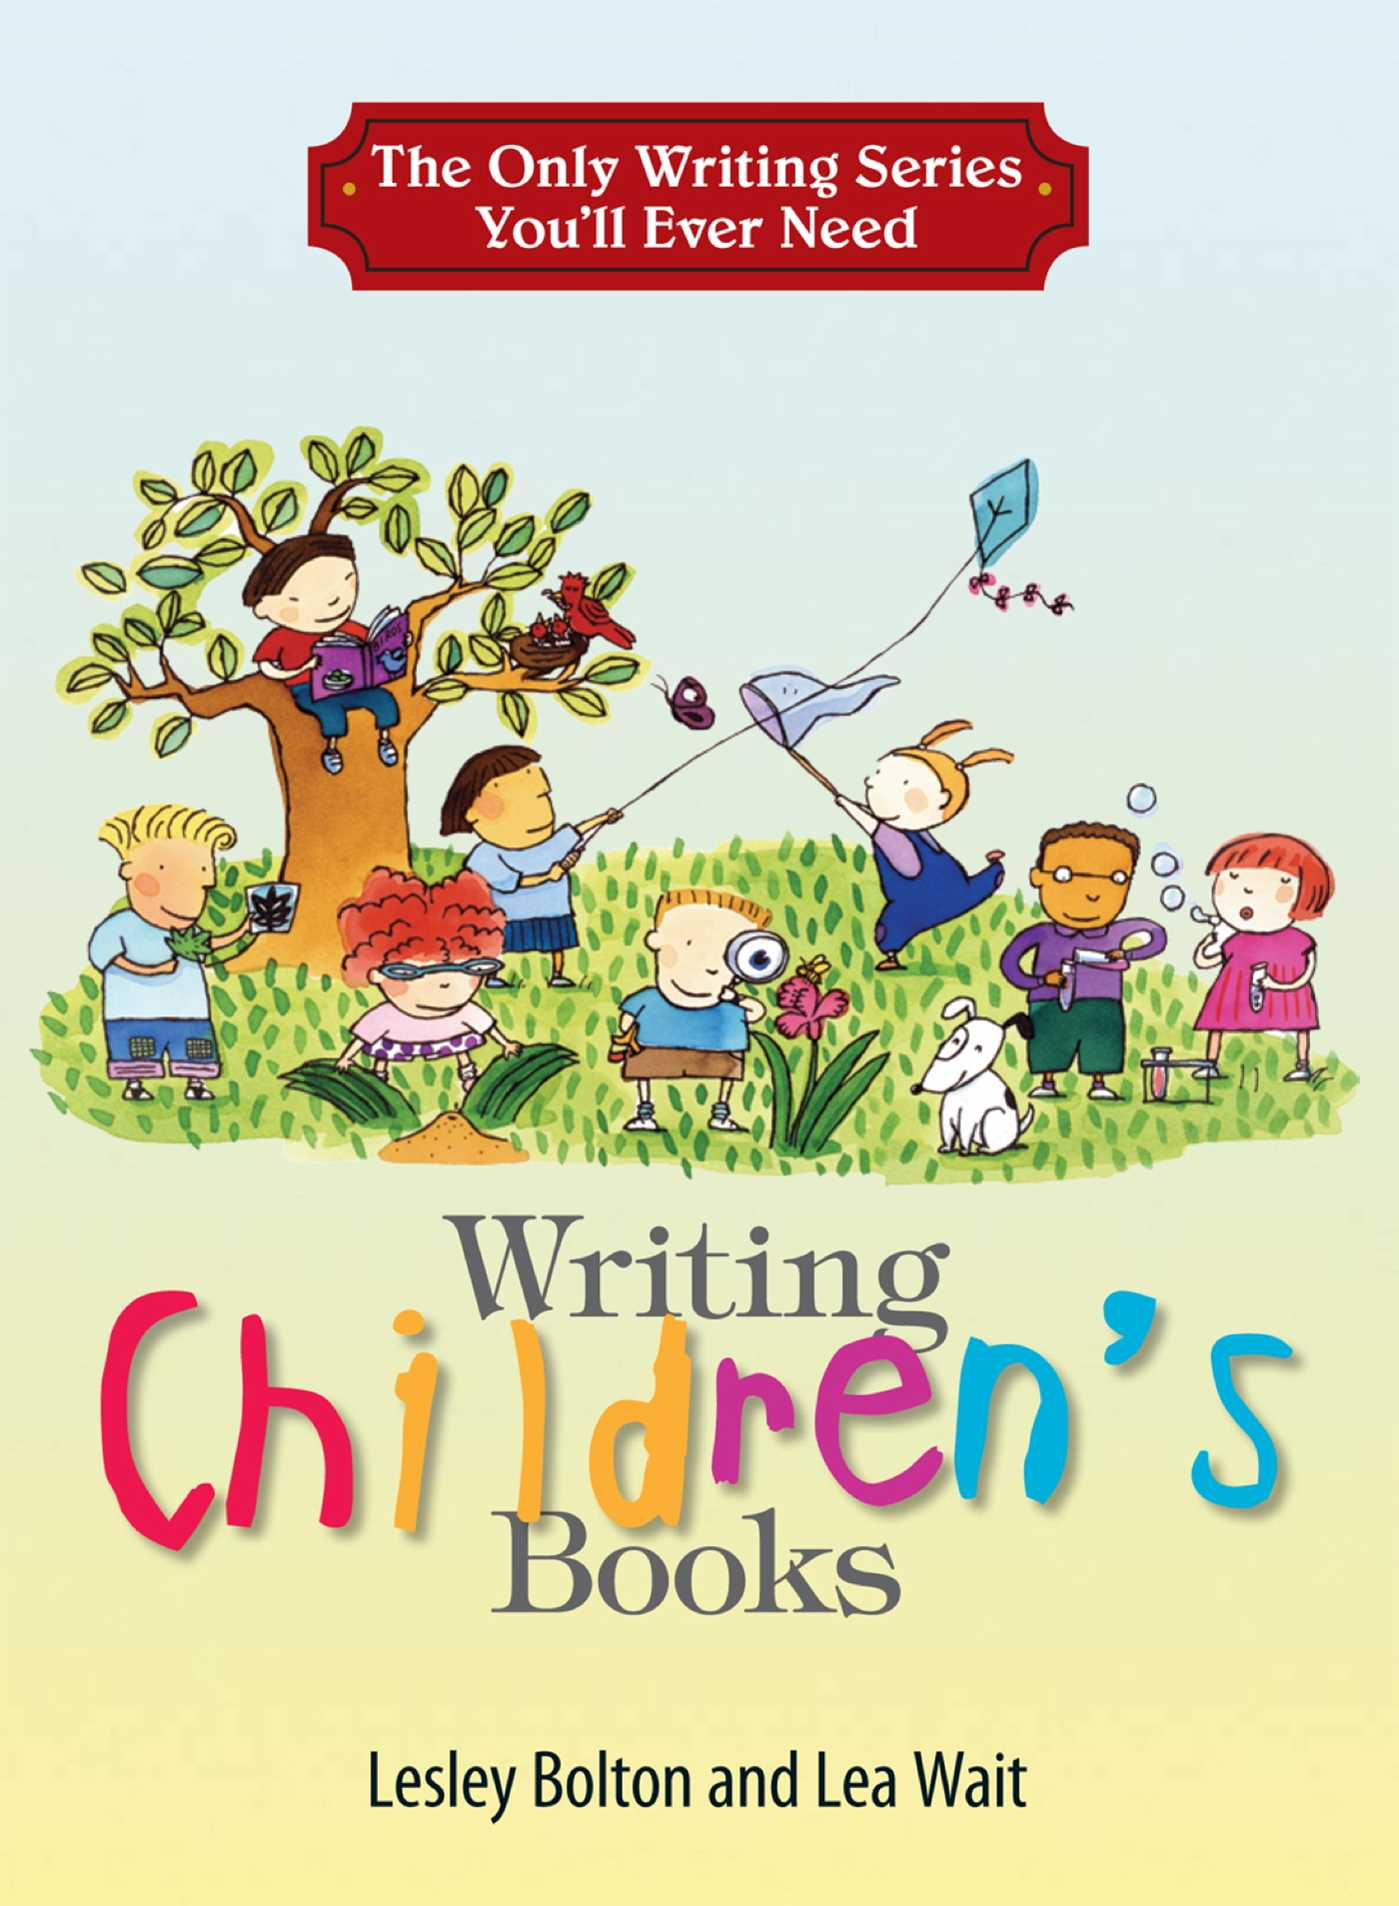 childrens literature 3 essay In 1969, when i first entered the world of writing children's literature, the field was nearly empty children of color were not represented, nor were children from the lower economic classes.